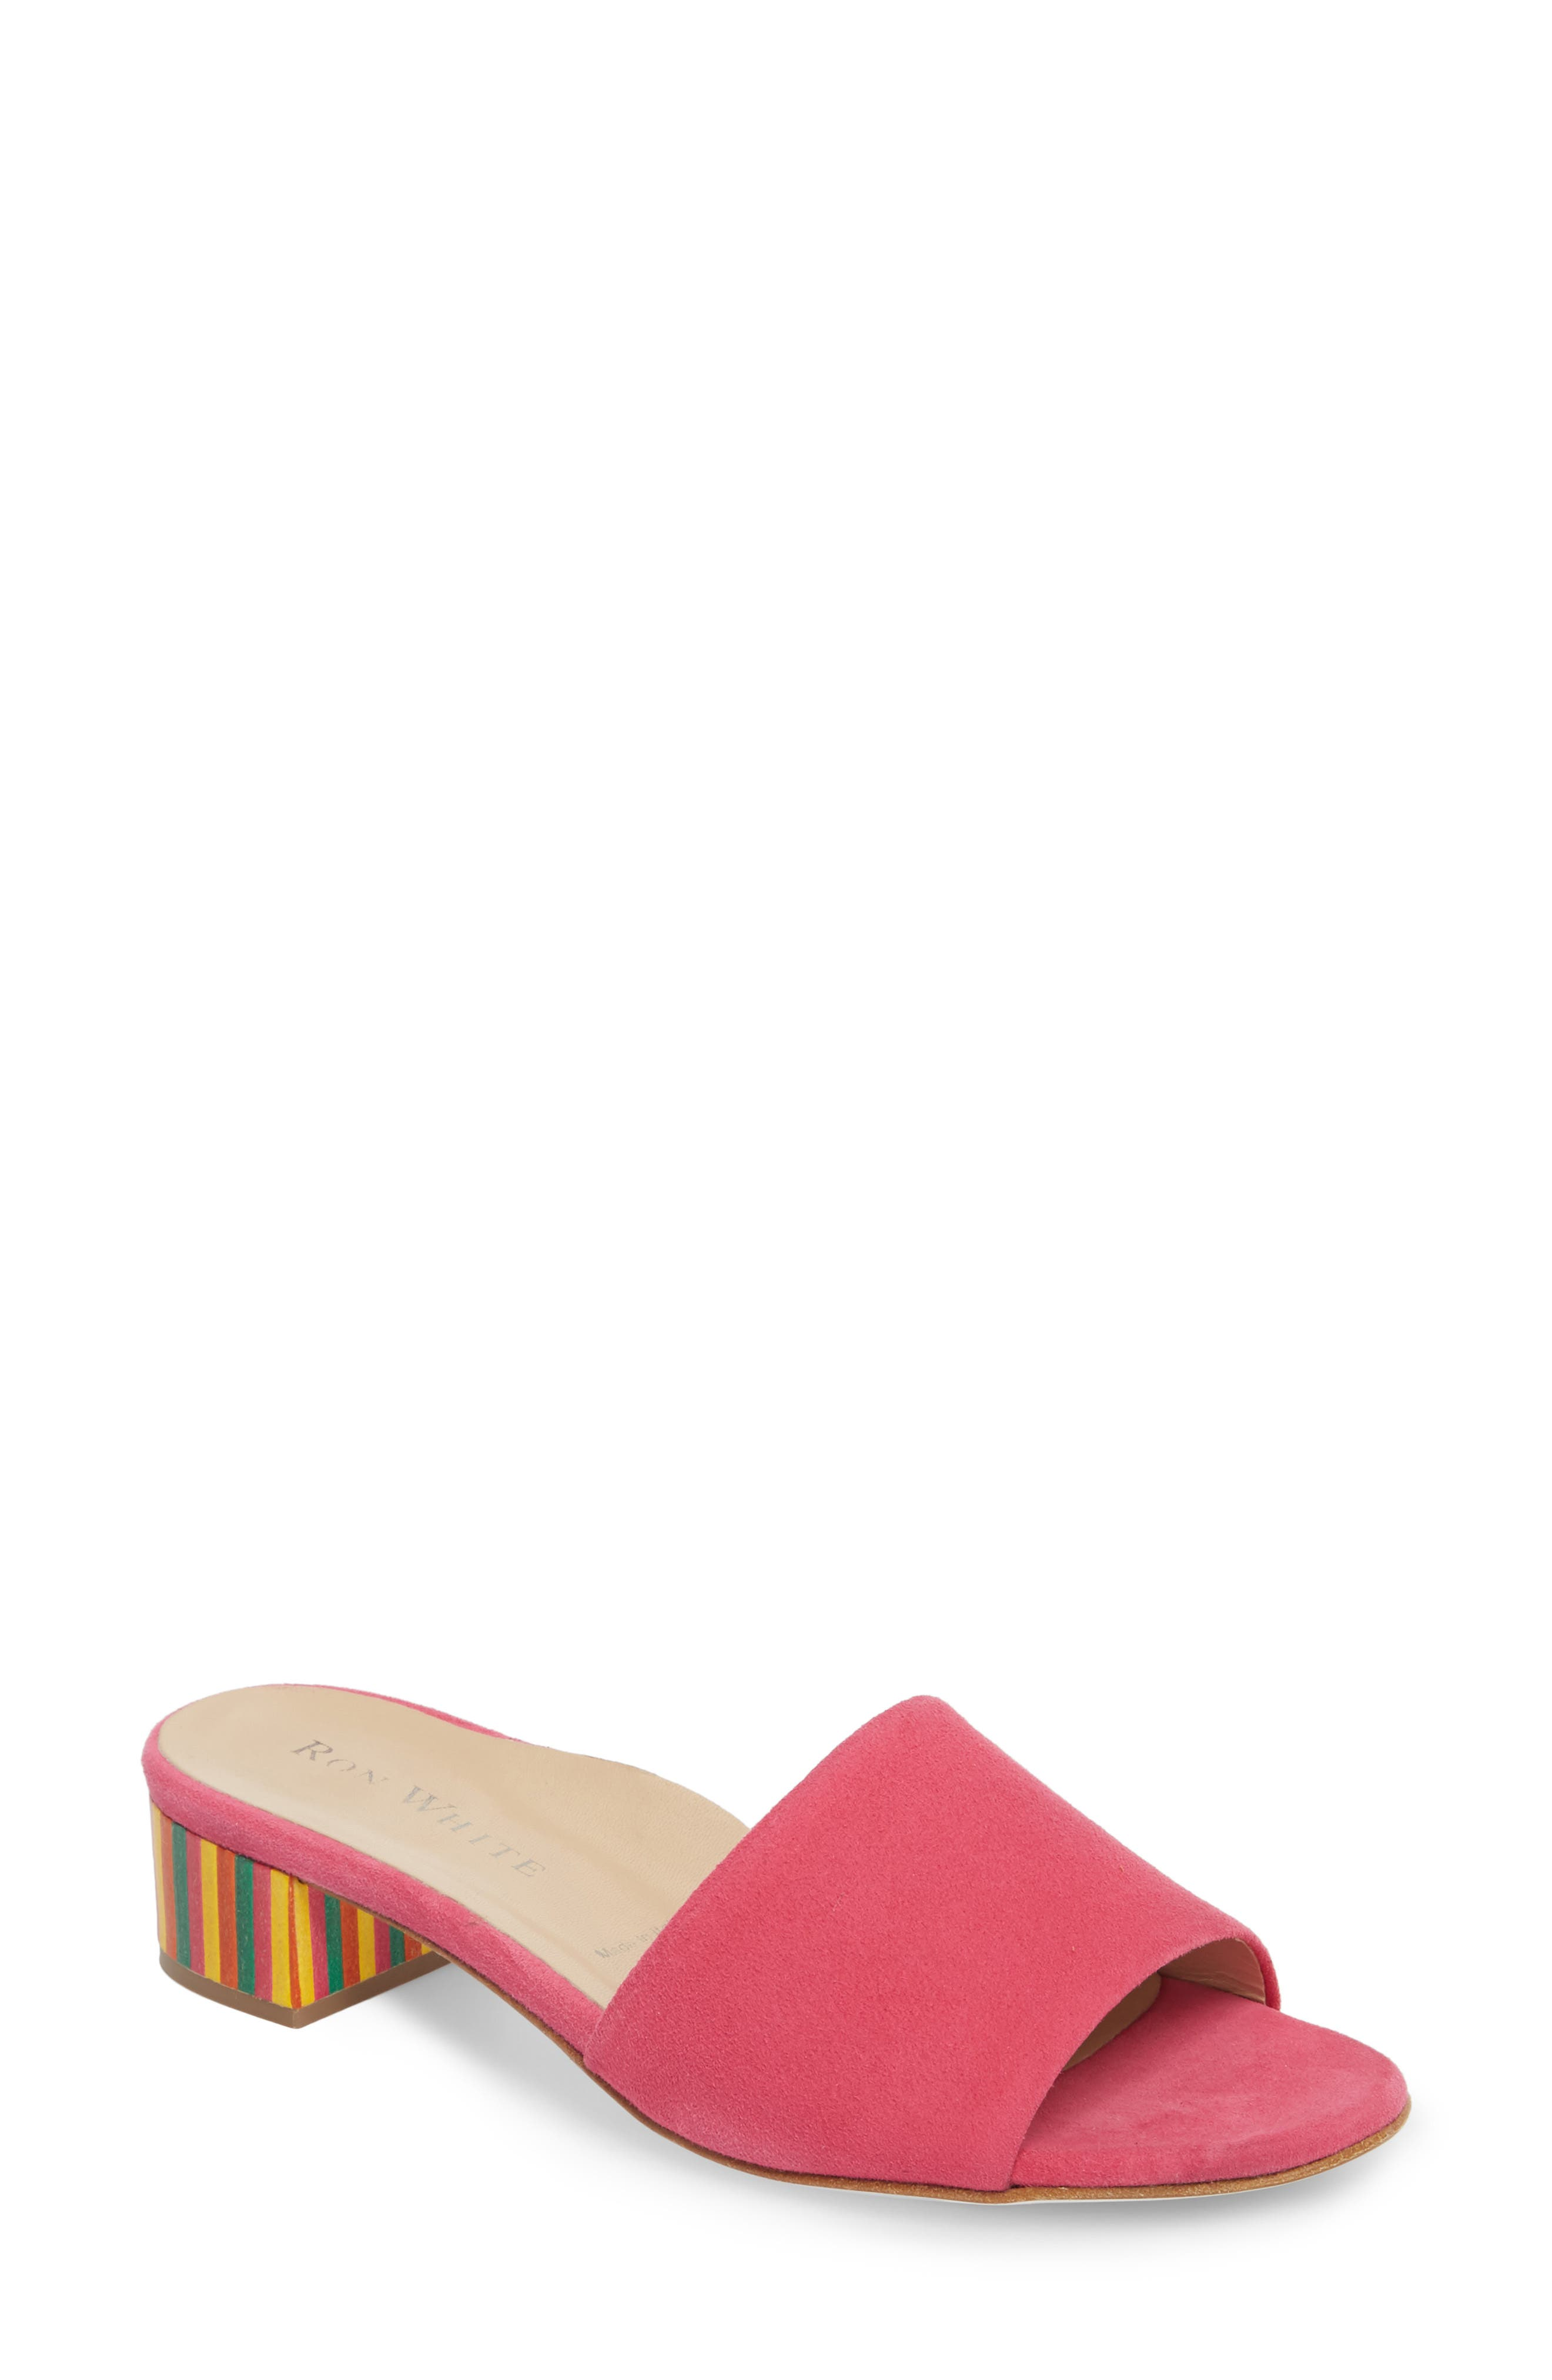 Esmarie Slide Sandal,                         Main,                         color, 670